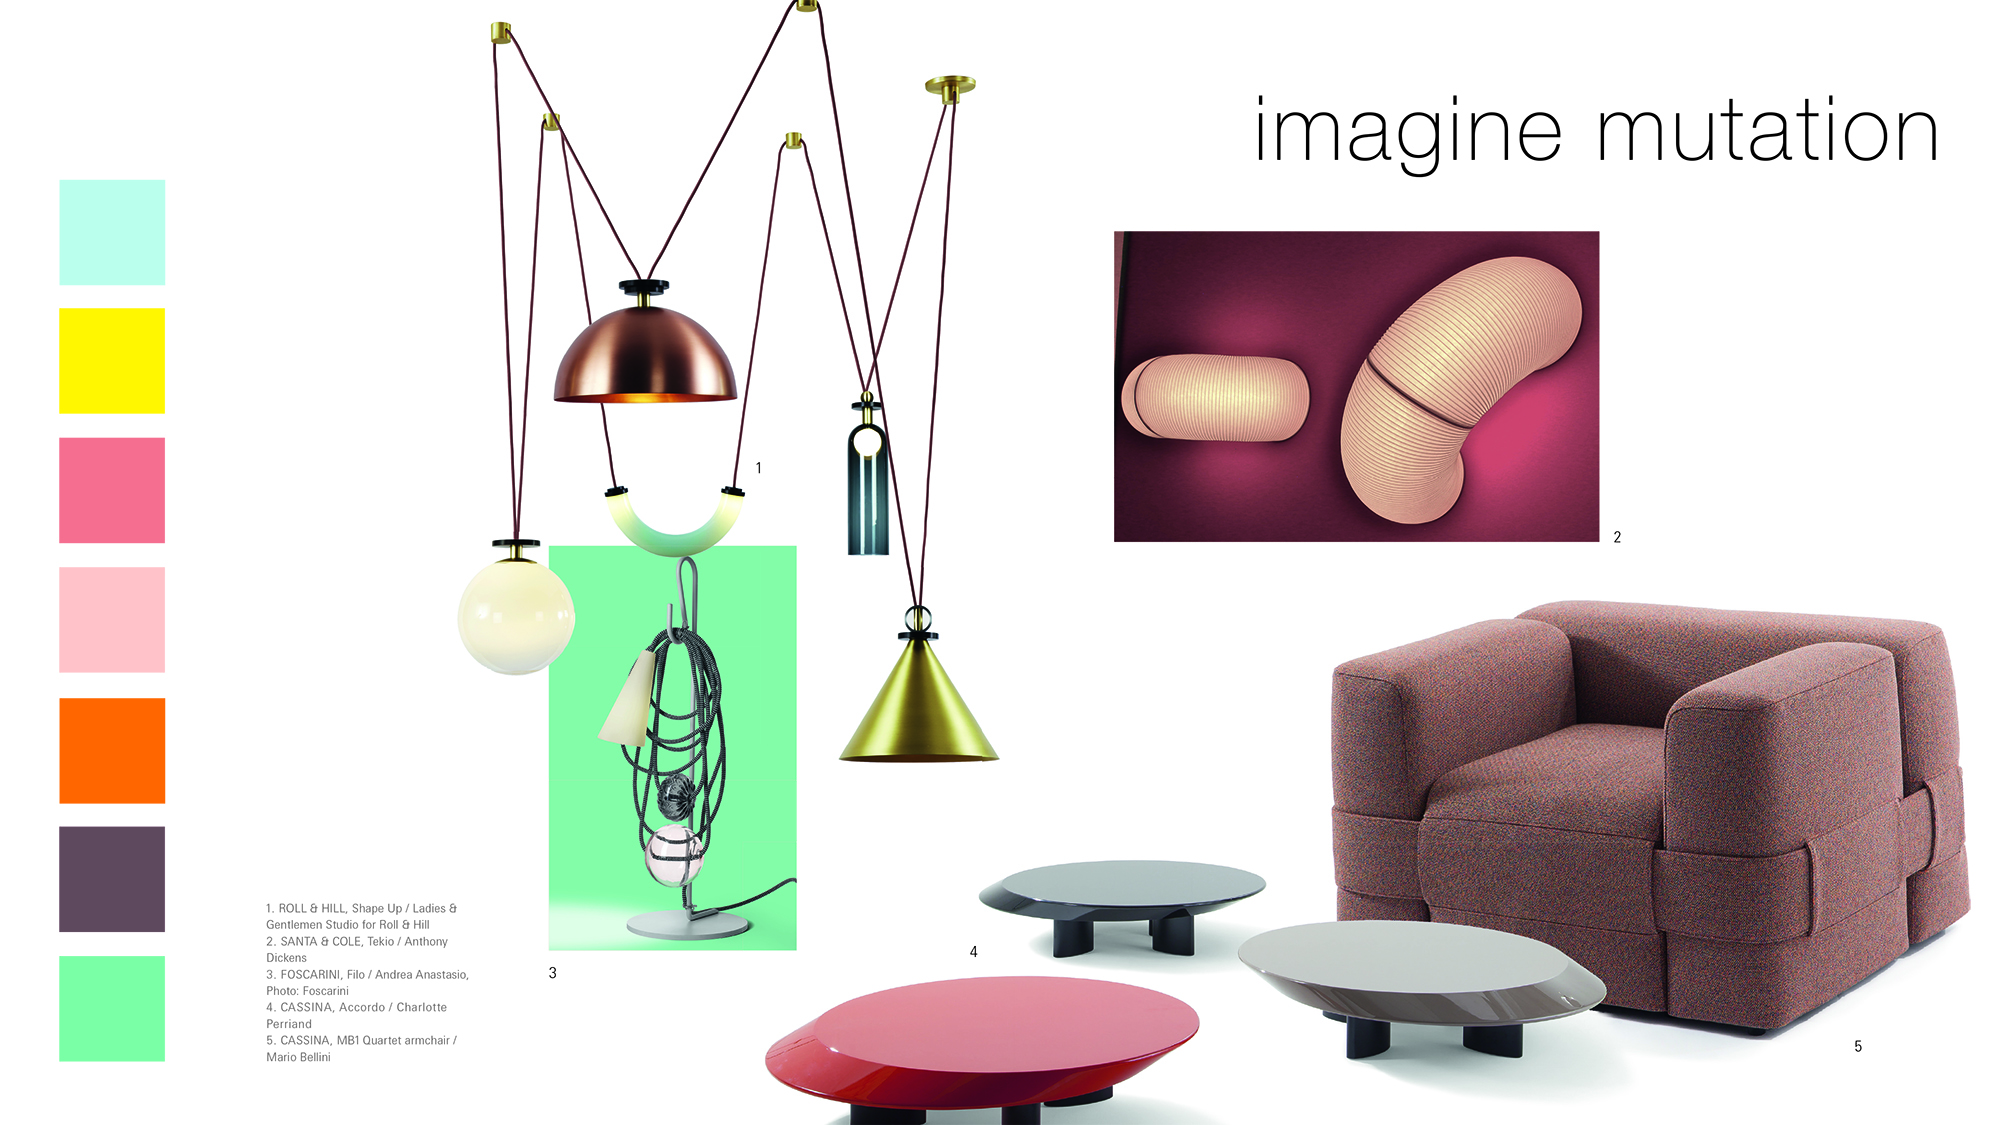 67008_LB_Trend_Adaption_Trendkollage_Website.indd